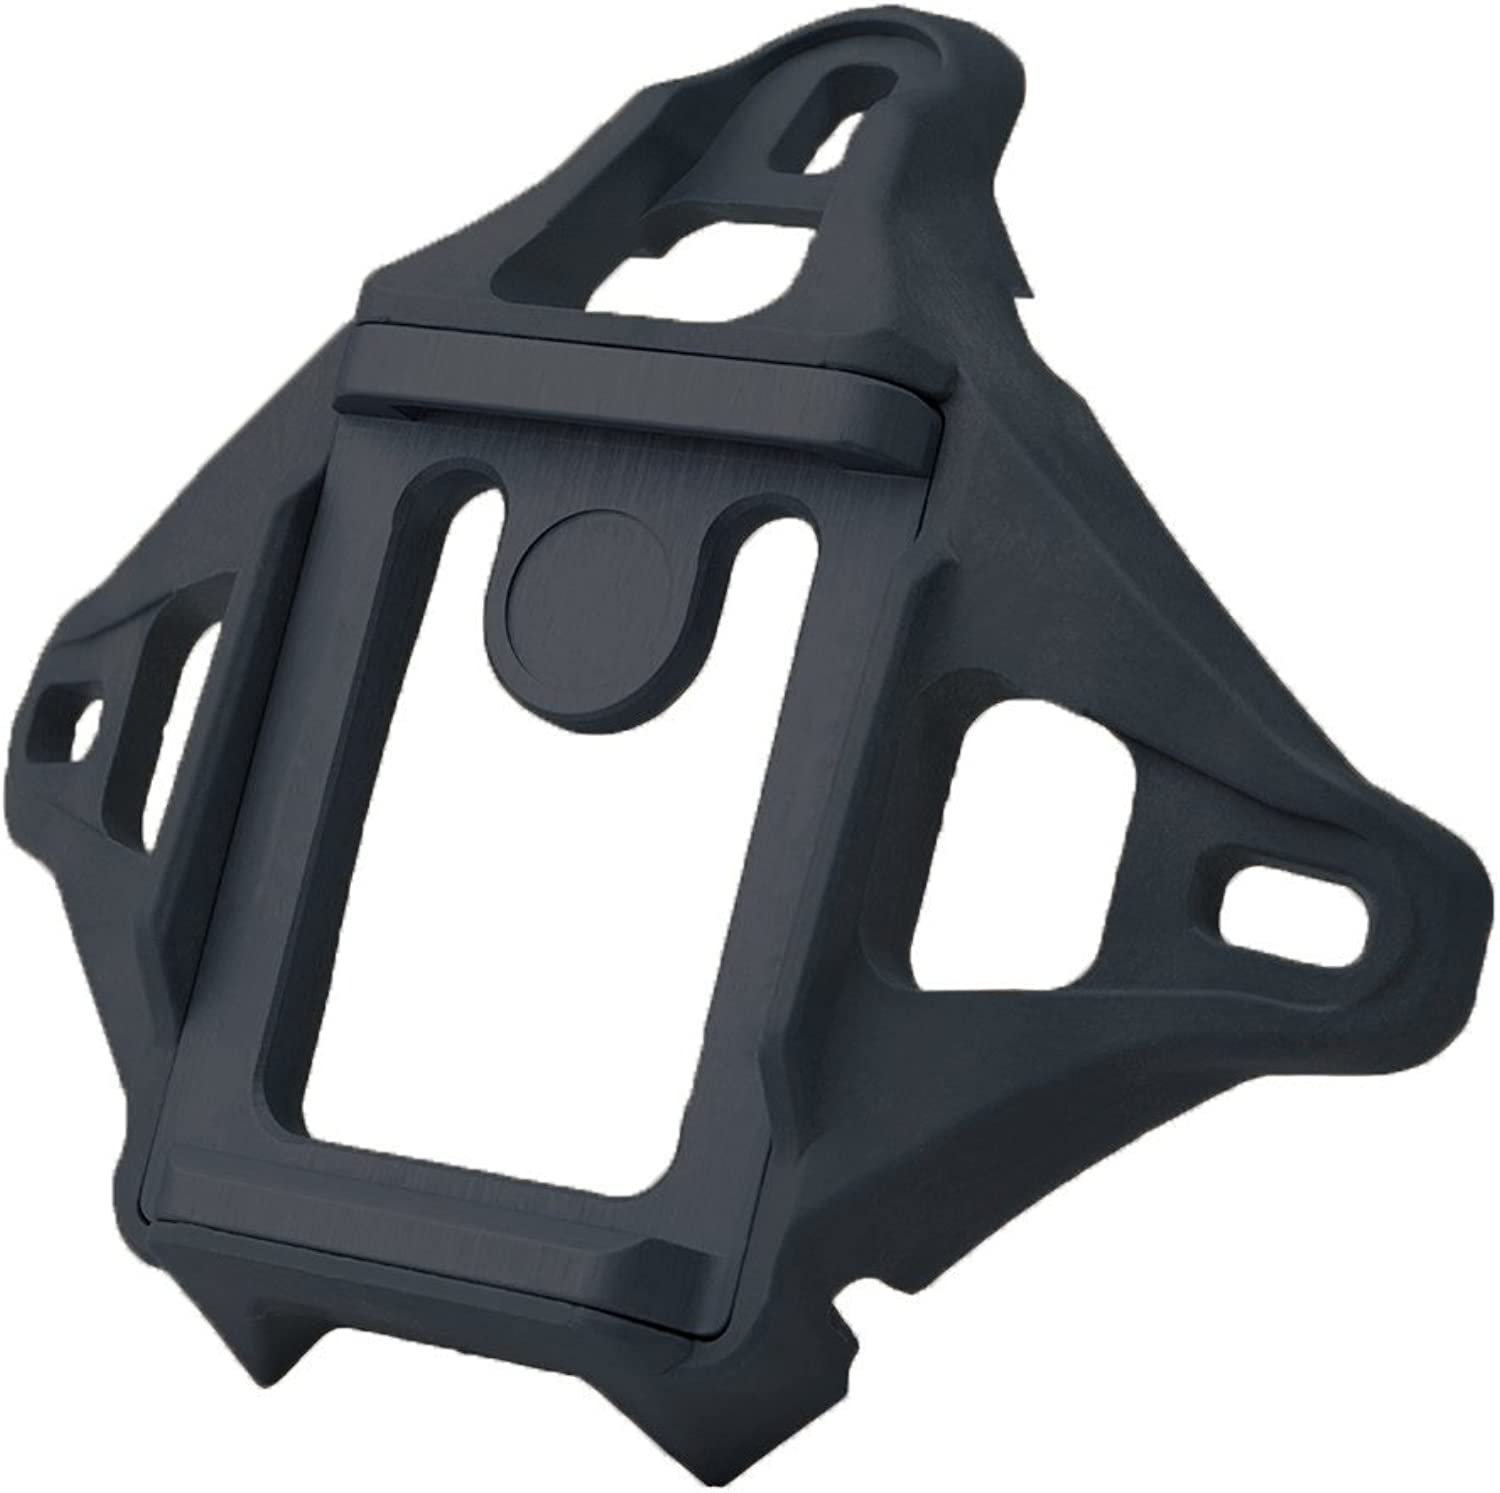 DLP Tactical 3Hole Skeleton NVG Mount Shroud for ACH   MICH   OPSCore FAST   Crye AirFrame Helmet (Black)